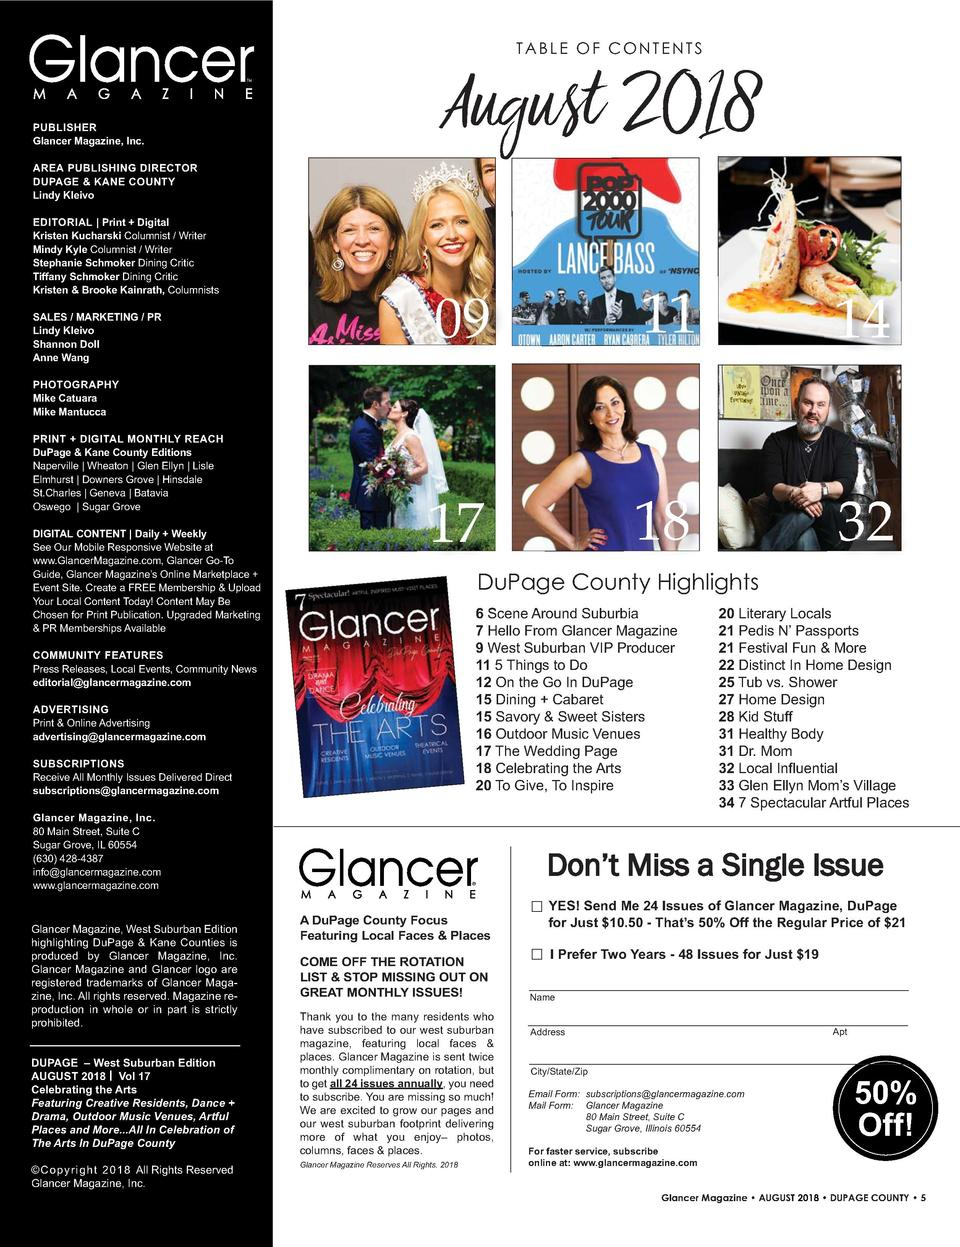 TABLE OF CONTENTS TM  PUBLISHER Glancer Magazine, Inc.  August 2018  AREA   PUBLISHING   DIRECTOR DUPAGE     KANE   COUNTY...